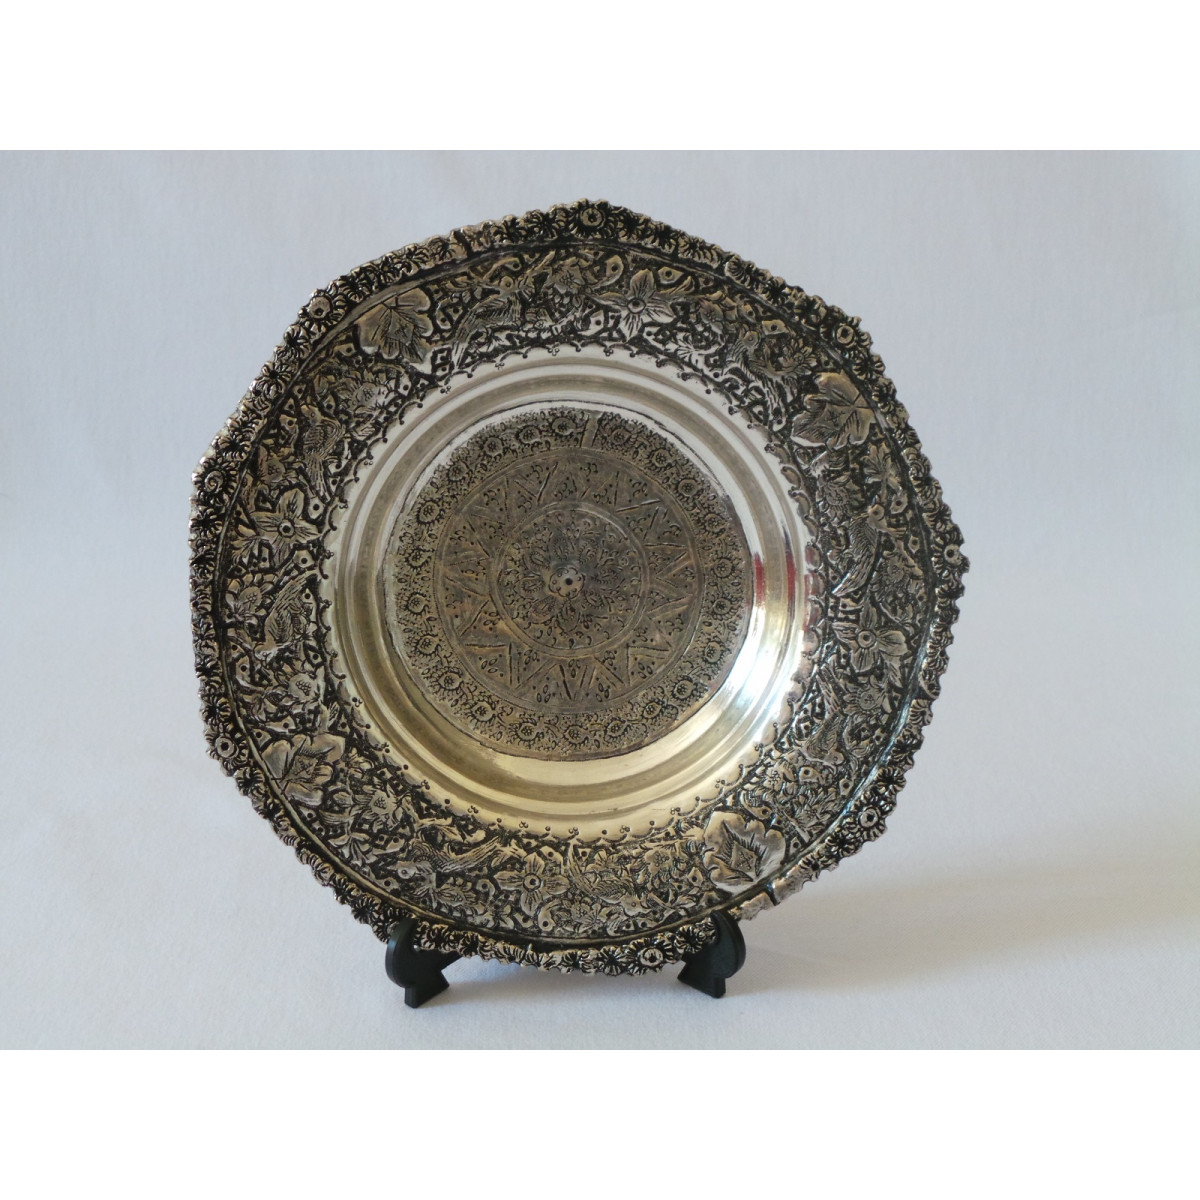 Hand Engraving on Sliver Plated Bowl Plate - HG2004-Persian Handicrafts